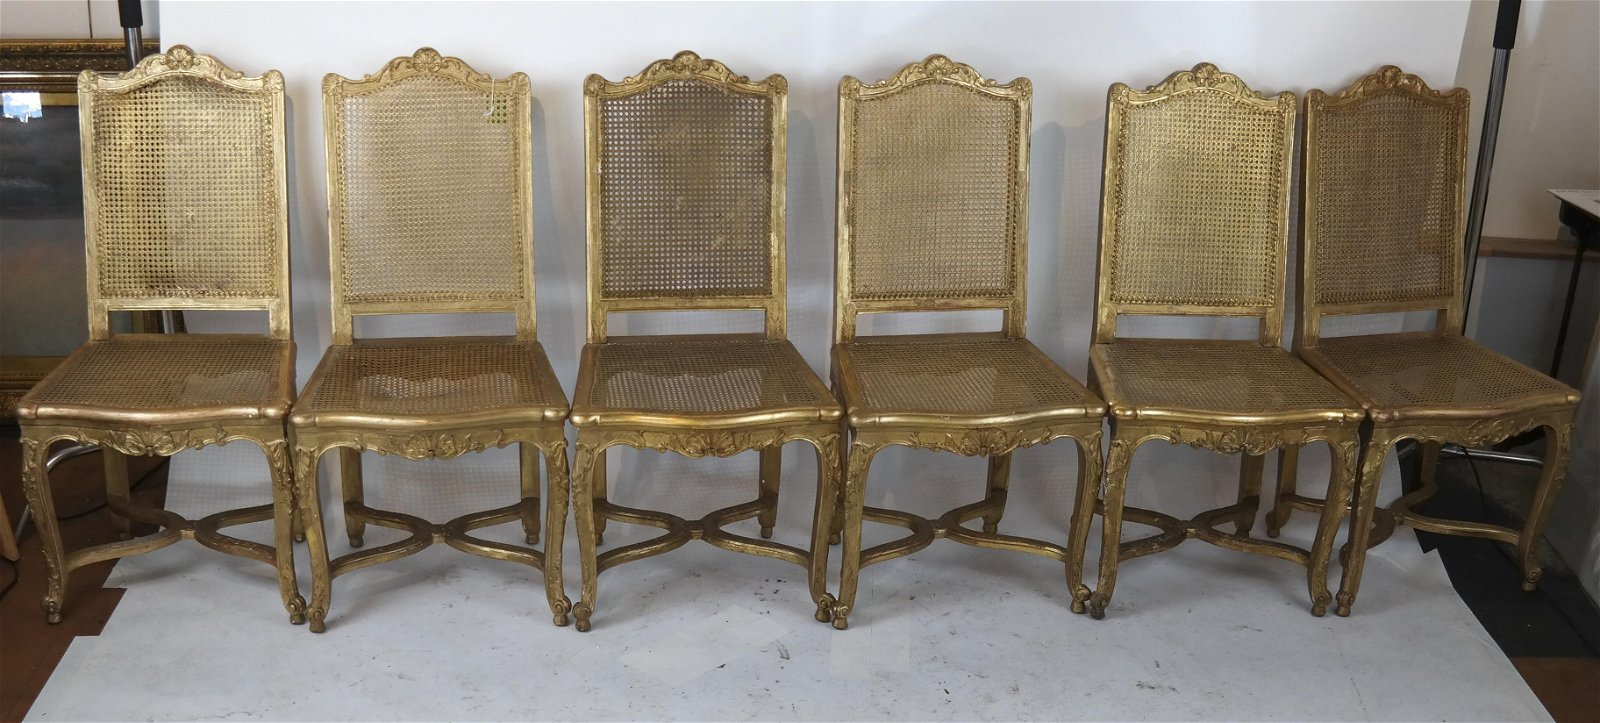 12 Regence-Style Gilt Wood Chairs